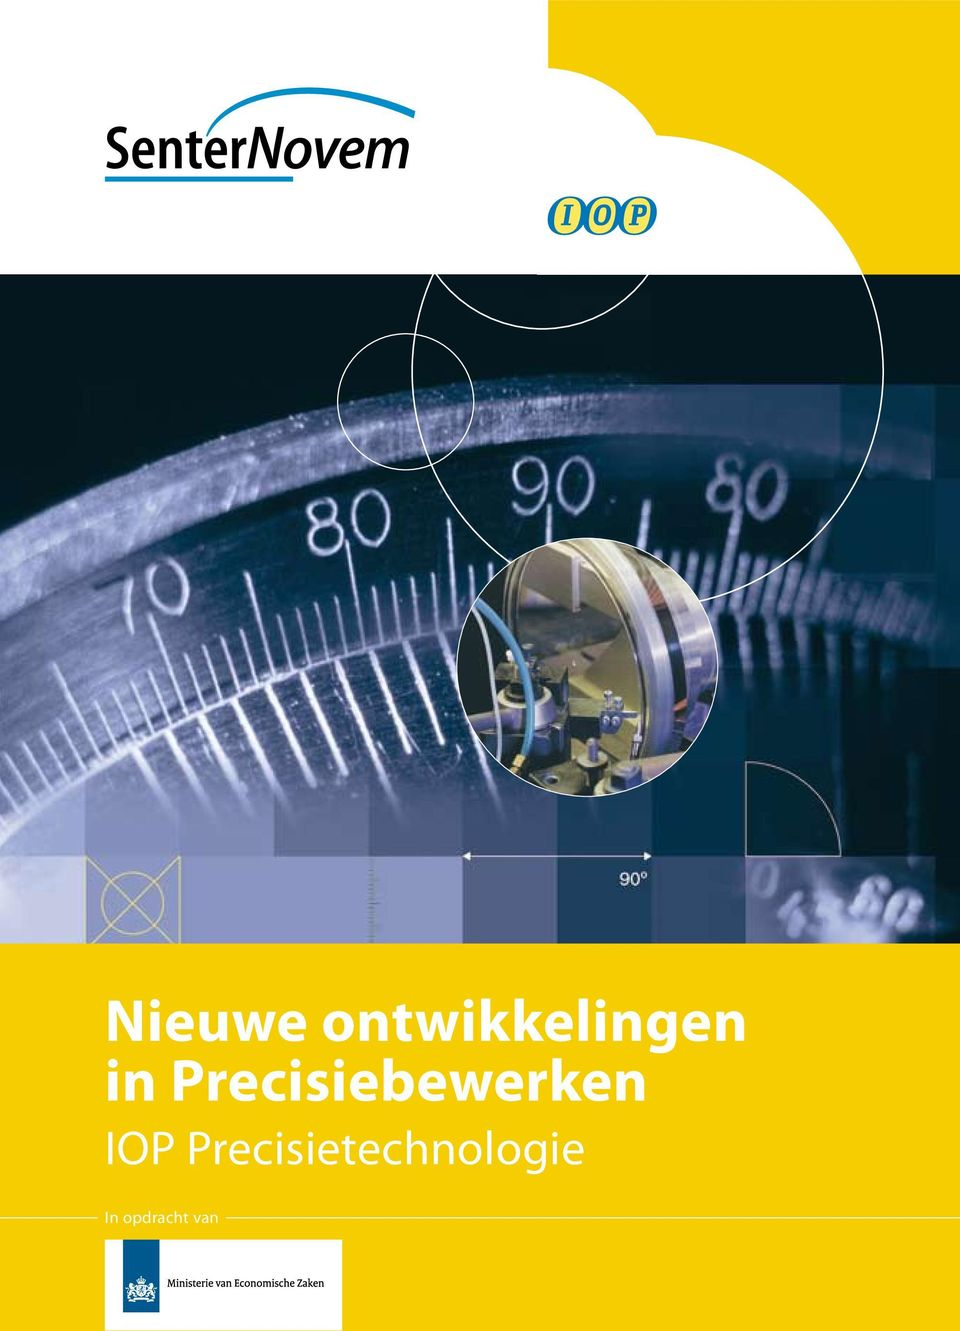 Precisietechnologie In opdracht